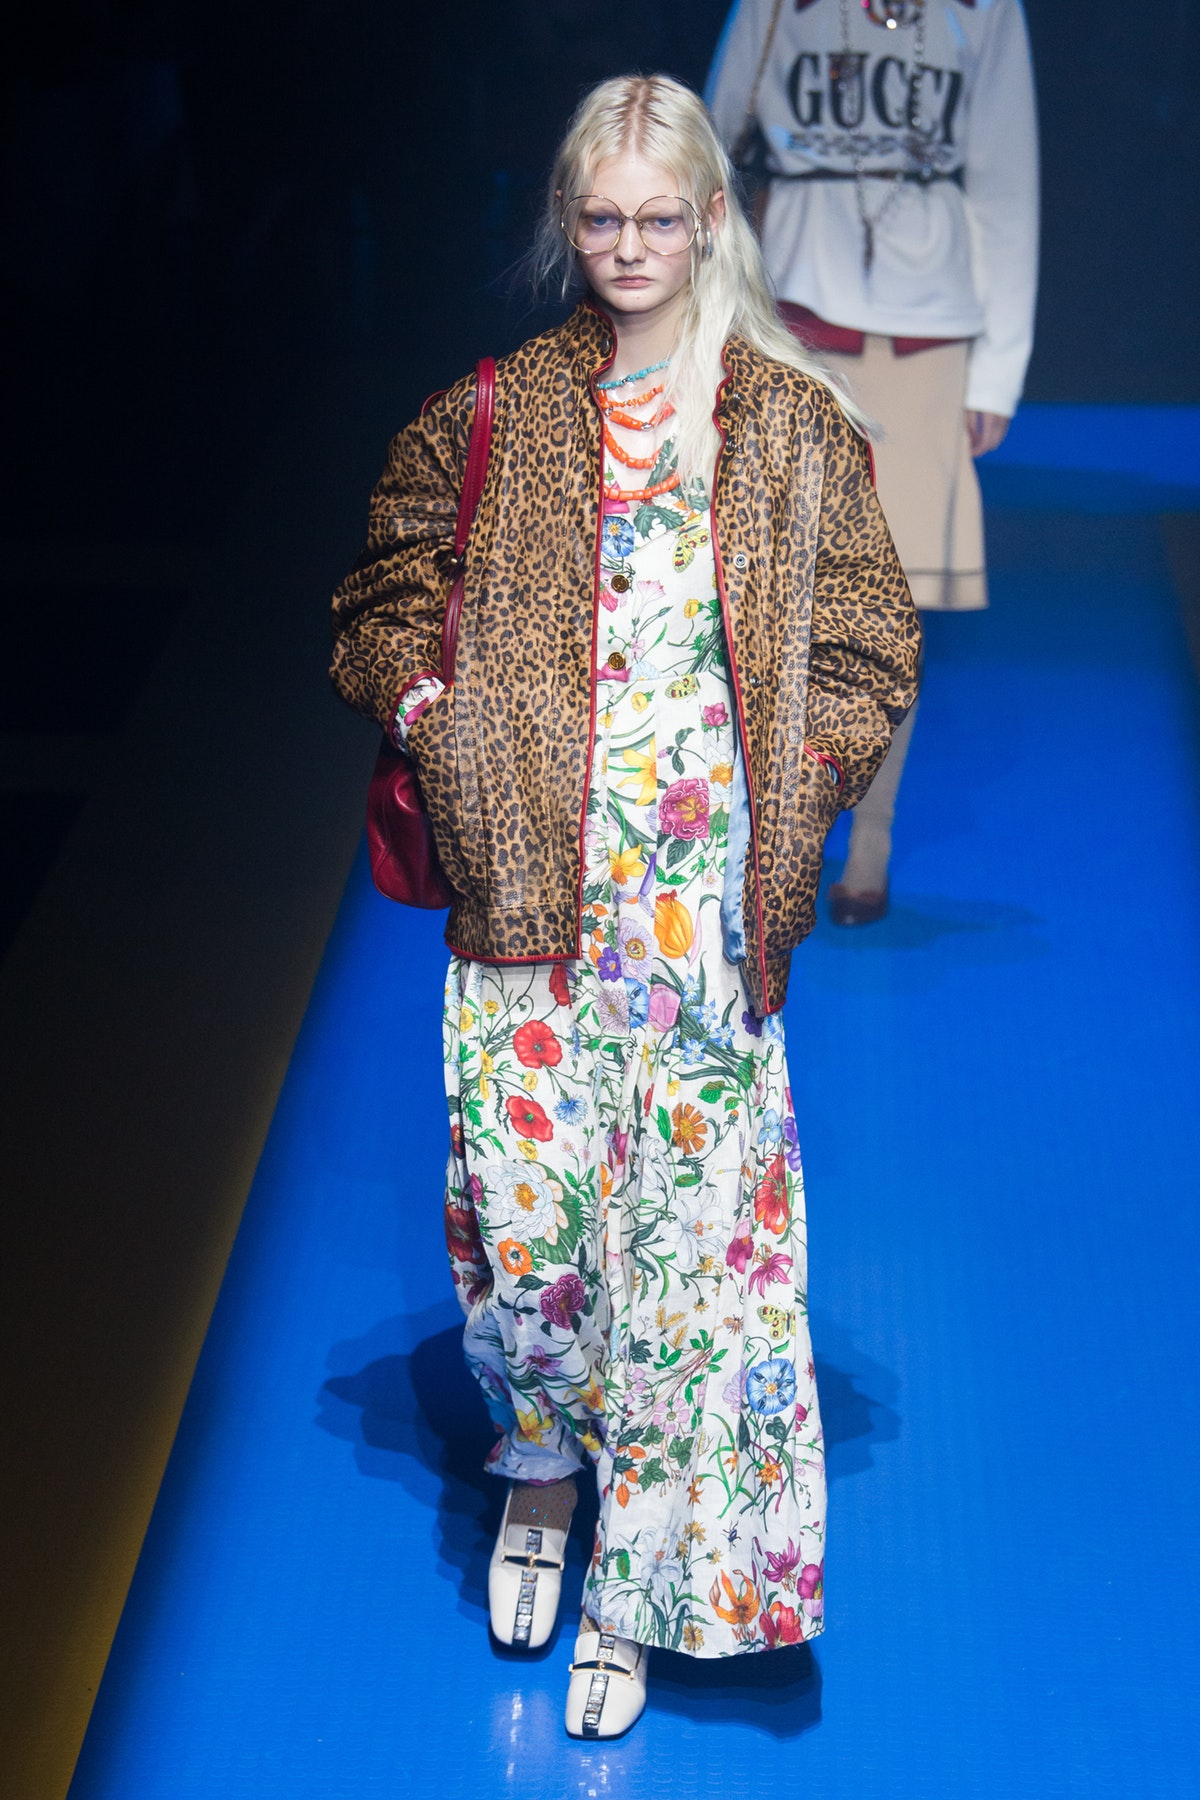 gucci_look_5_ready_to_wear_spring_2018.jpeg